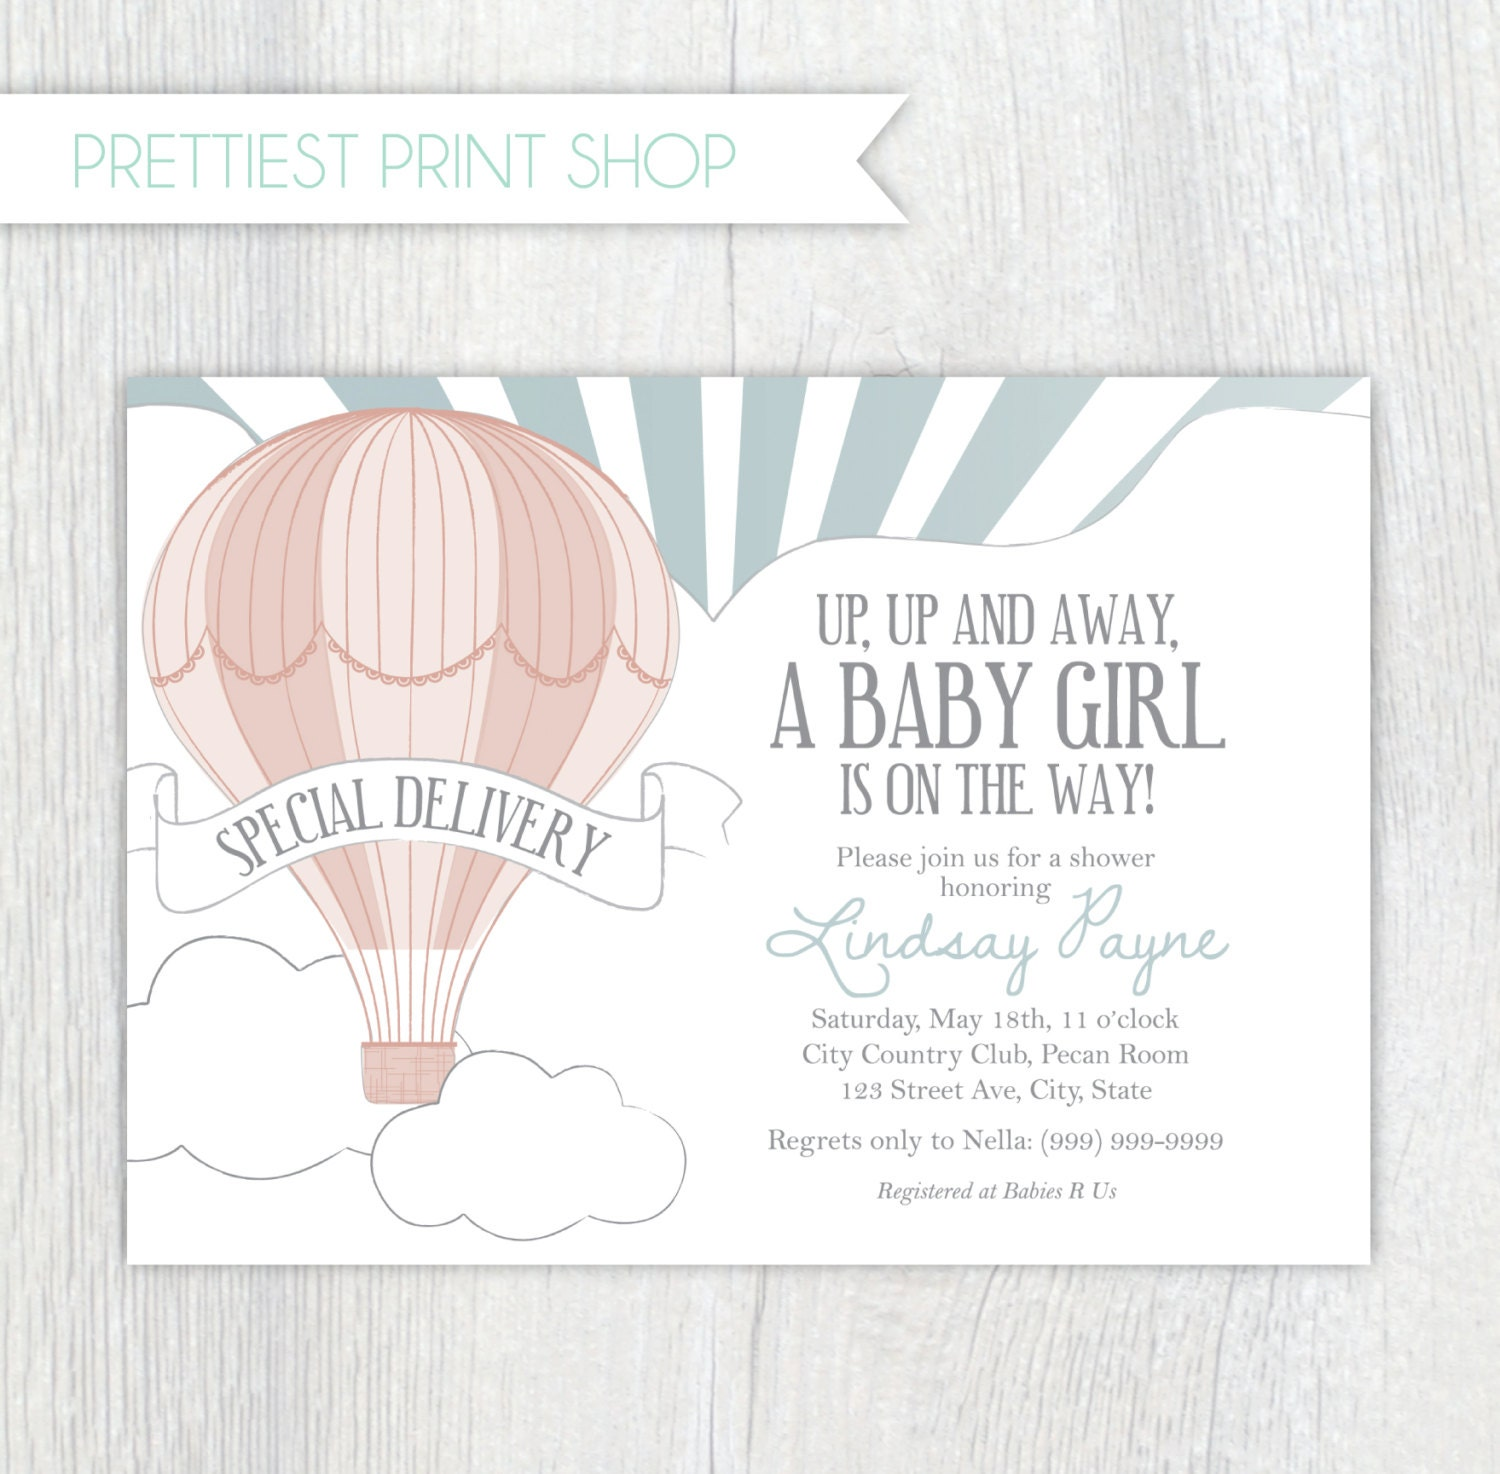 Printable Invitation Hot Air Balloon Style 2